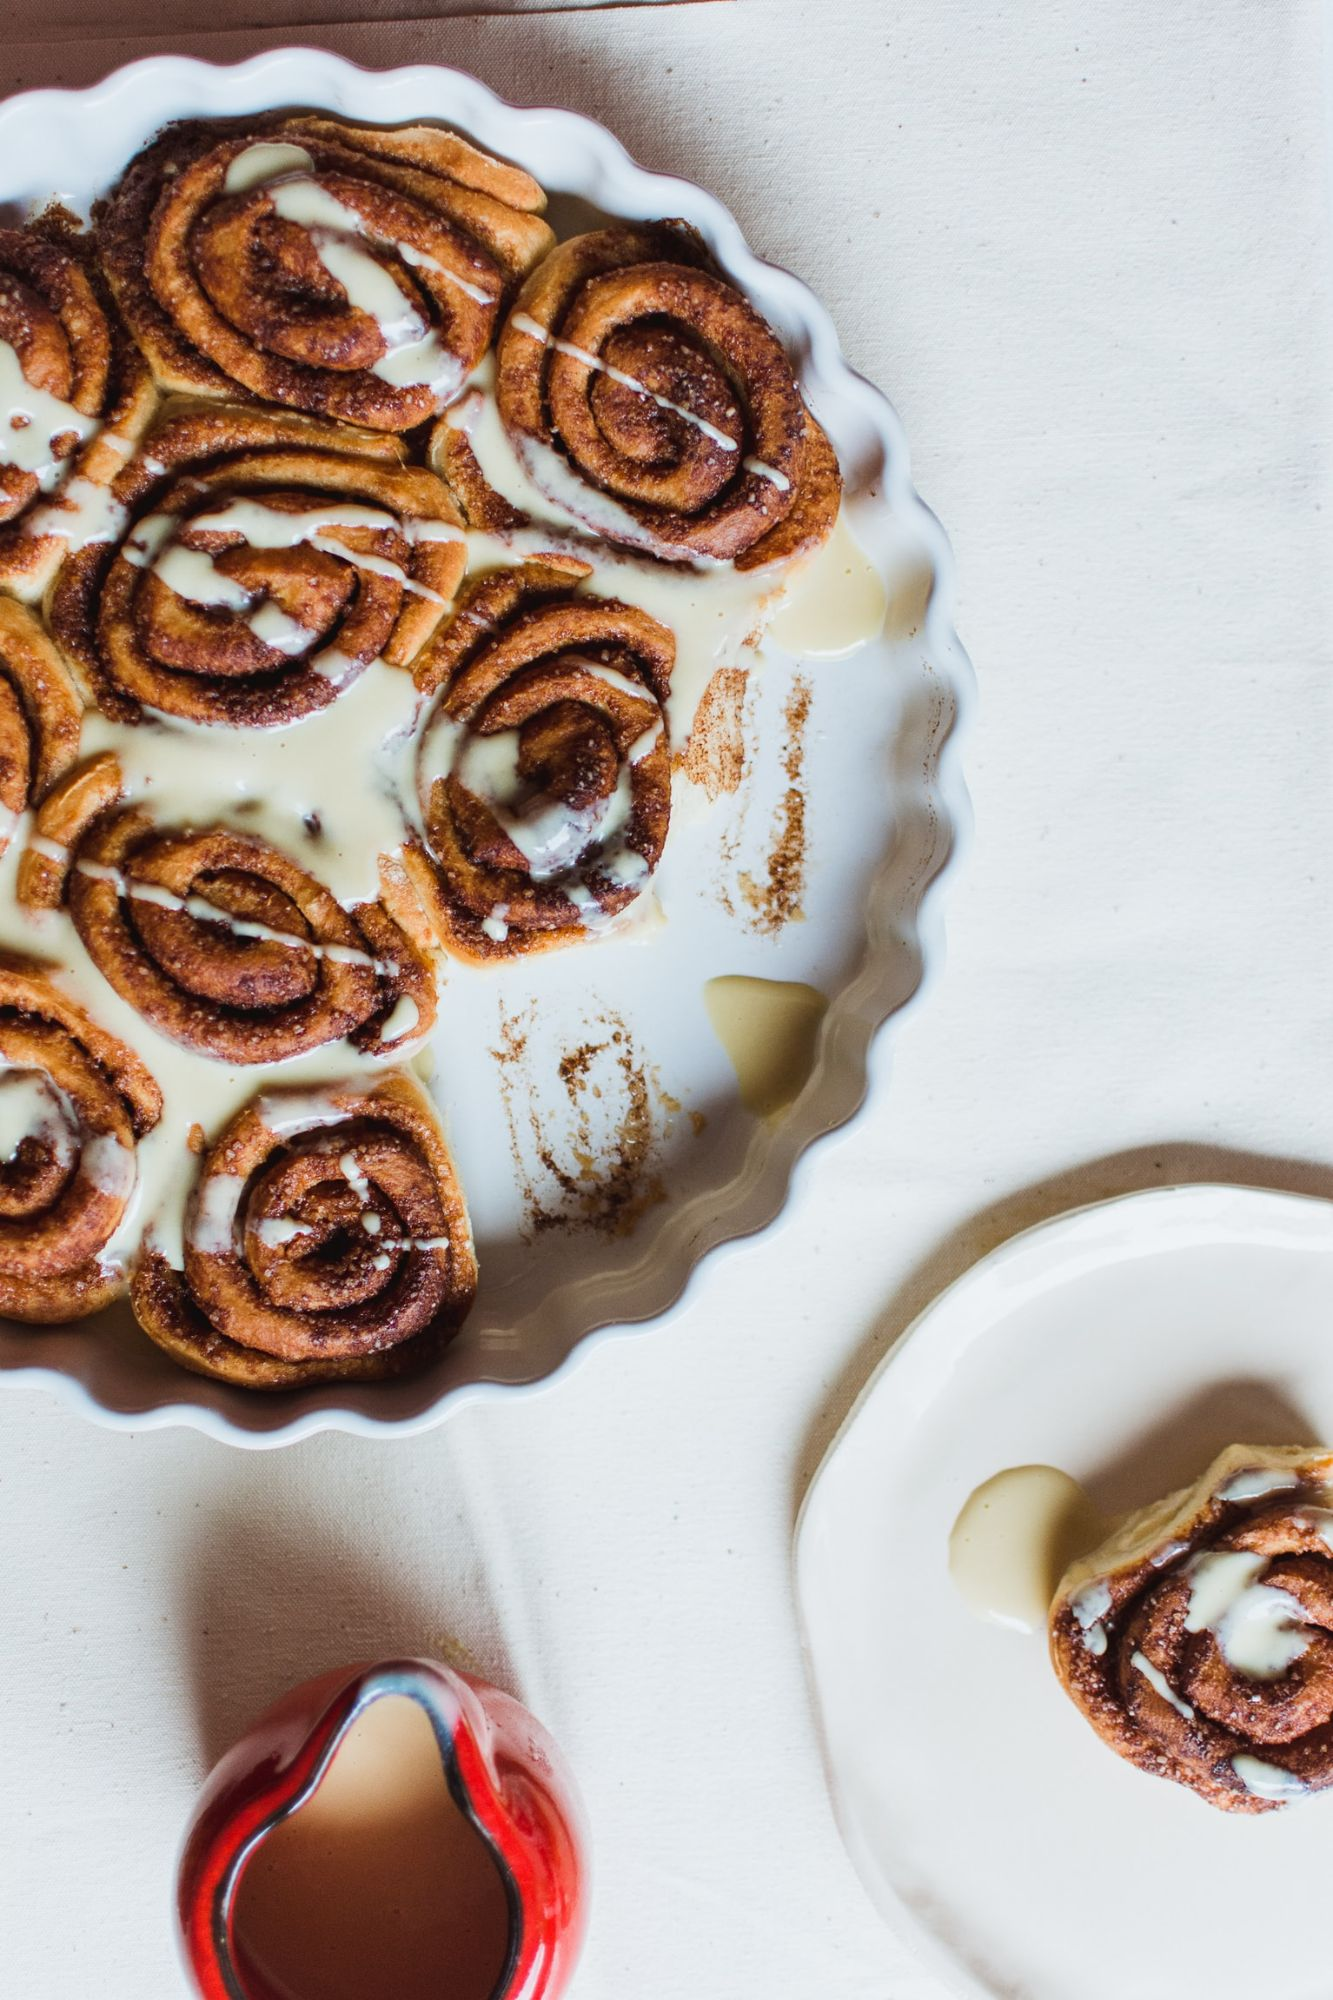 Fruity Cinnamon and Cranberry Rolls